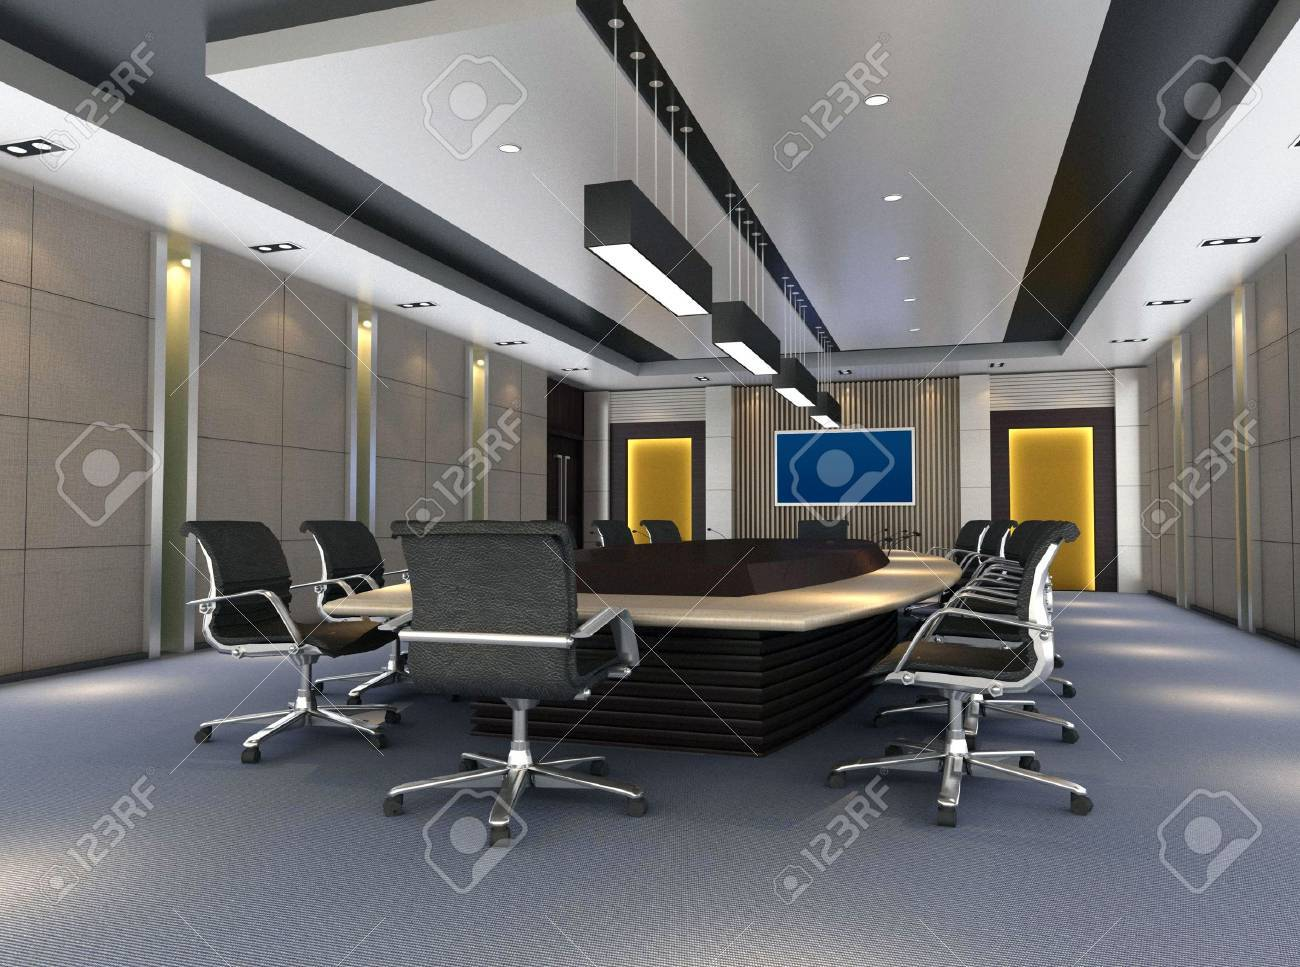 The Computer Generated 3d Image Of The Modern Conference Hall Stock Photo Picture And Royalty Free Image Image 4178561